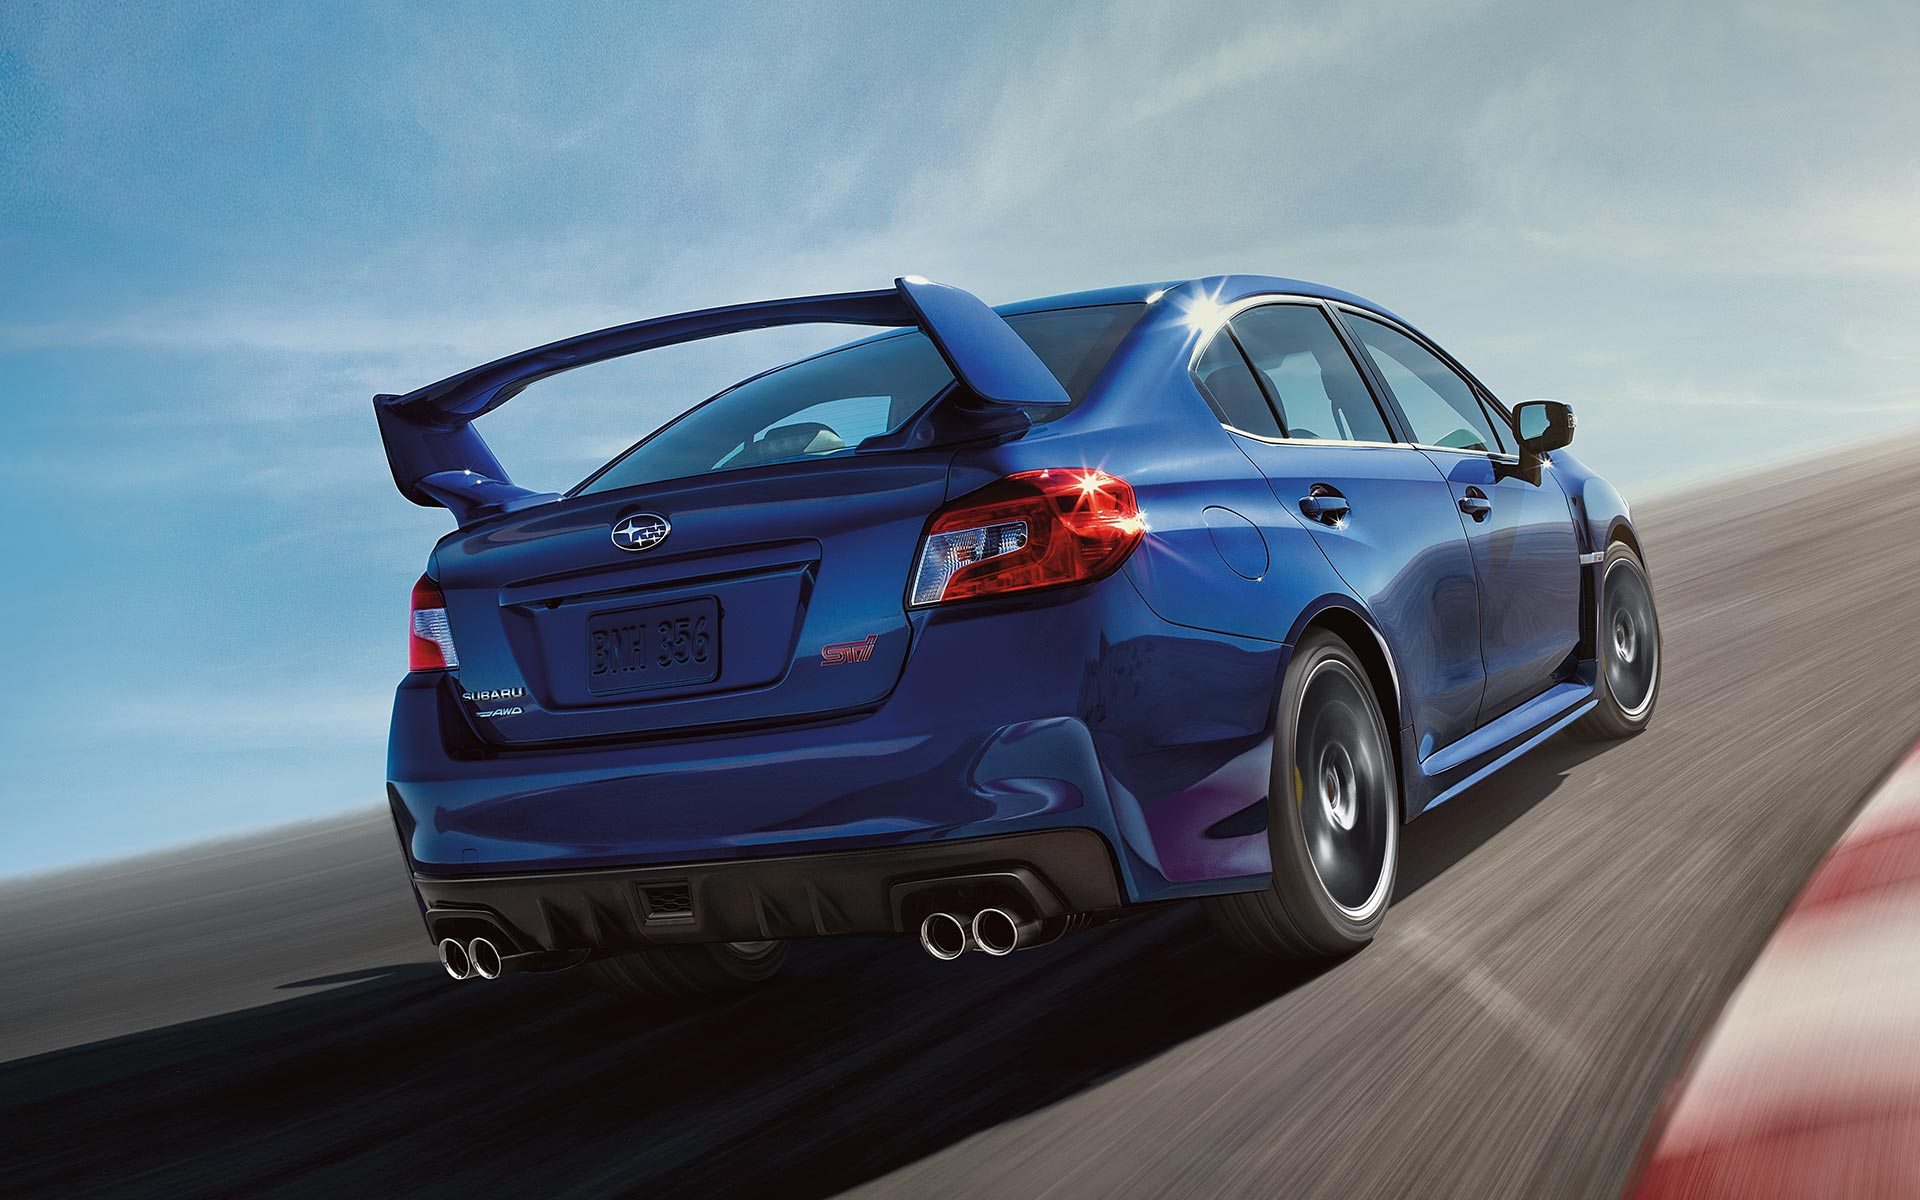 2020 WRX STI driving on track with blue sky and wispy clouds